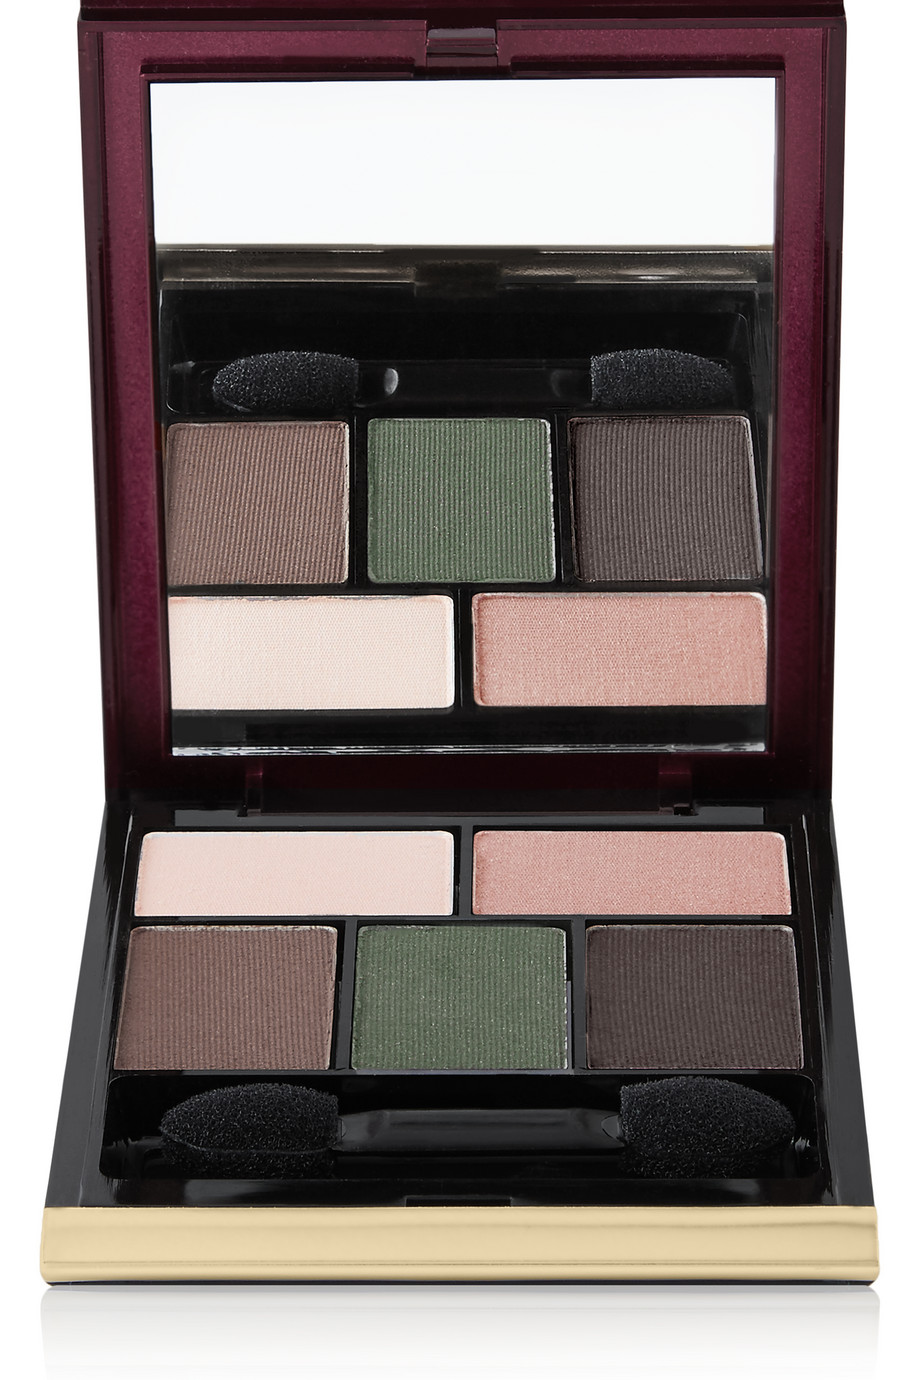 The Featherlights Eyeshadow Palette, by Kevyn Aucoin